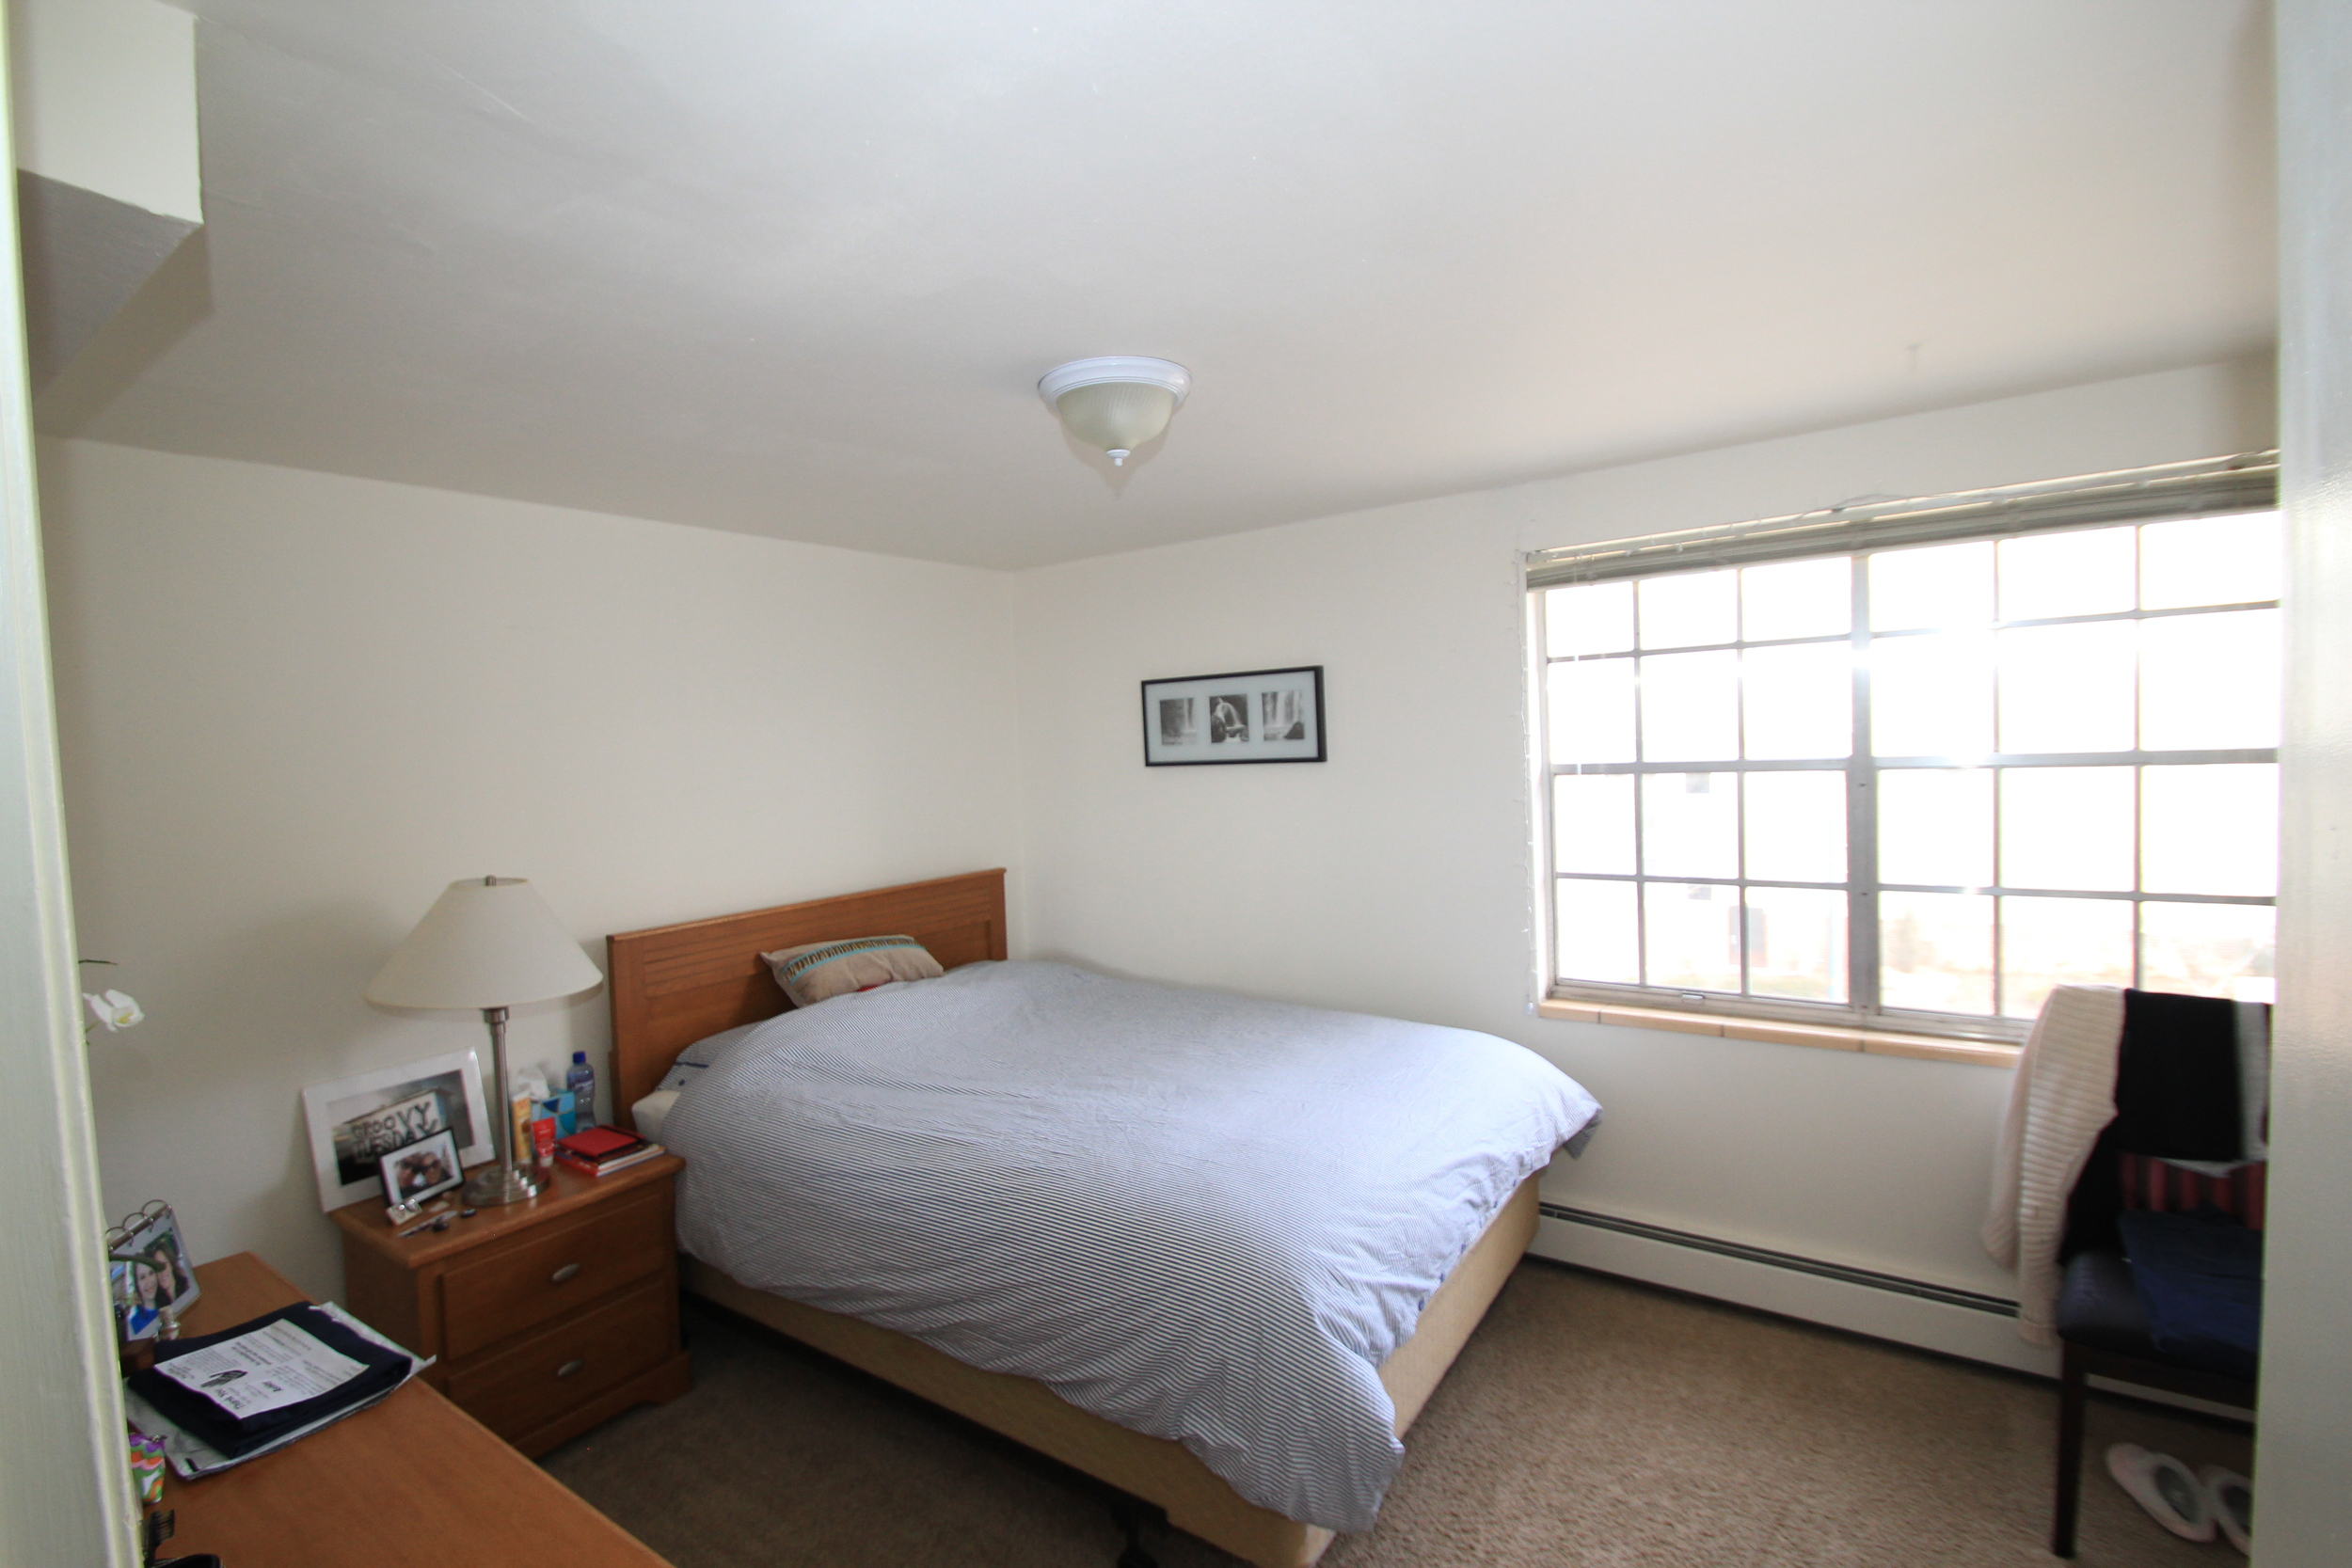 cc end unit bedroom 1.JPG